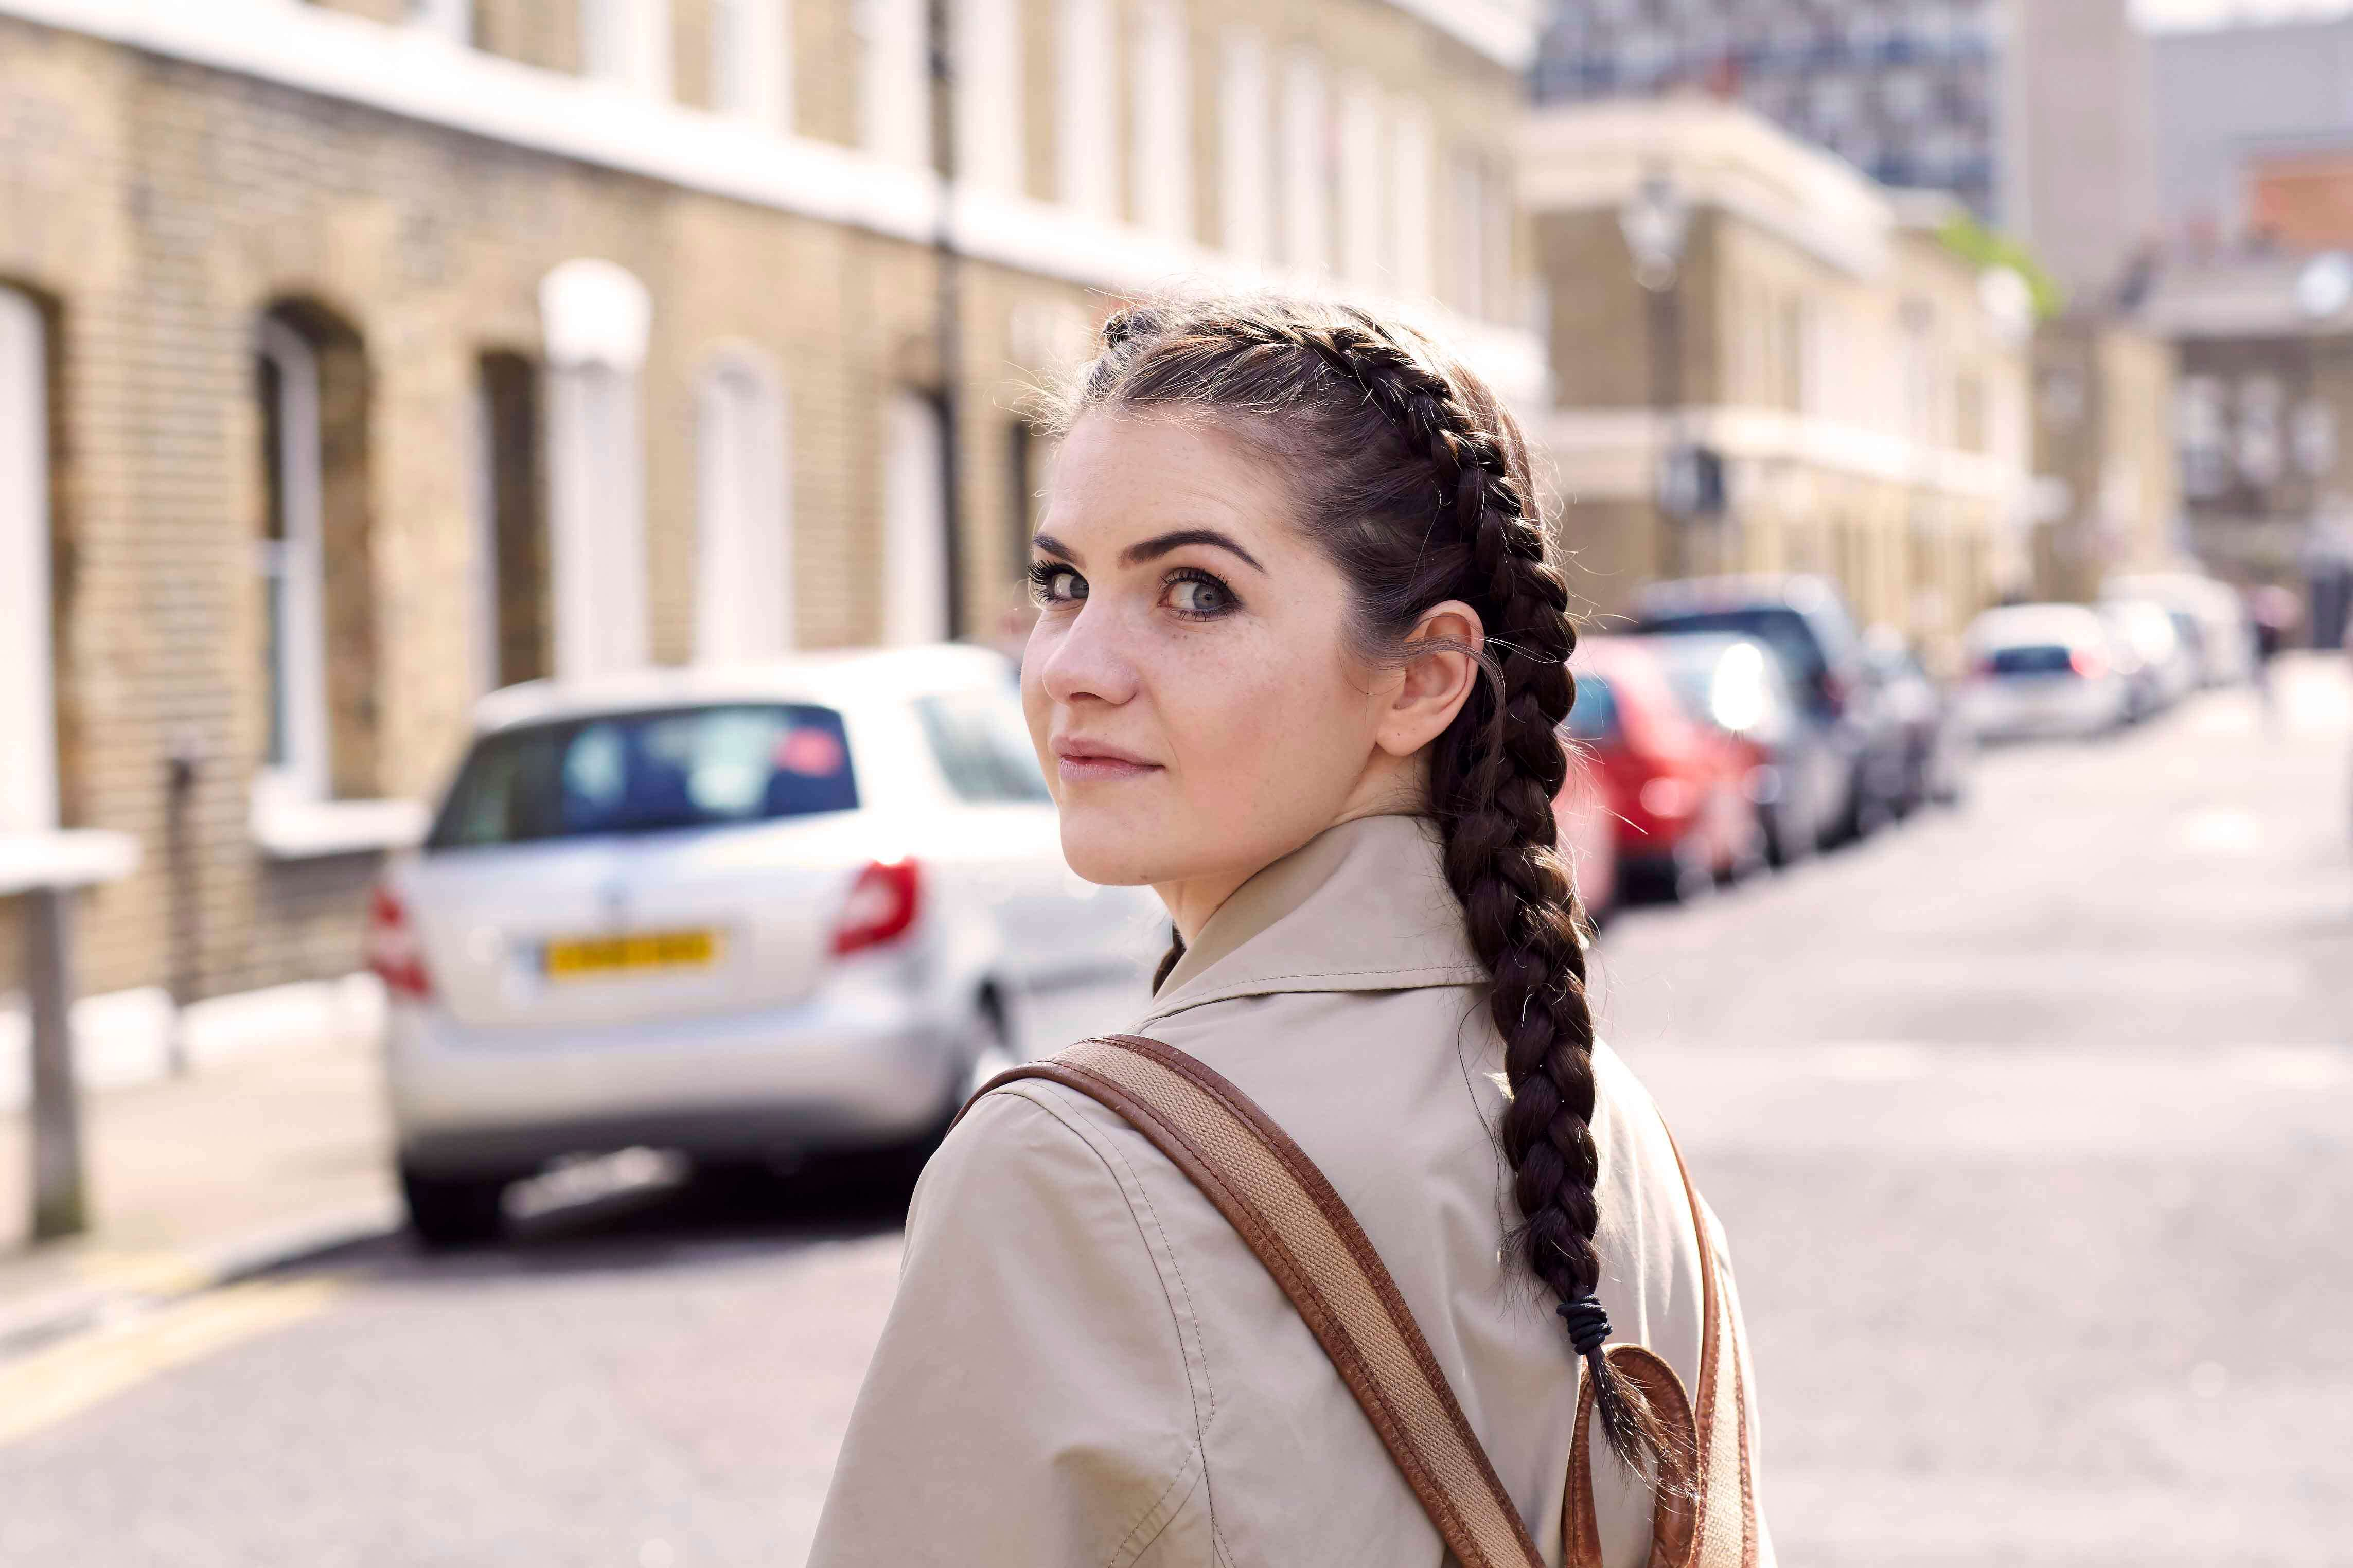 Best hairspray: Woman with brown long hair in double boxer braids wearing a backpack and beige jacket.